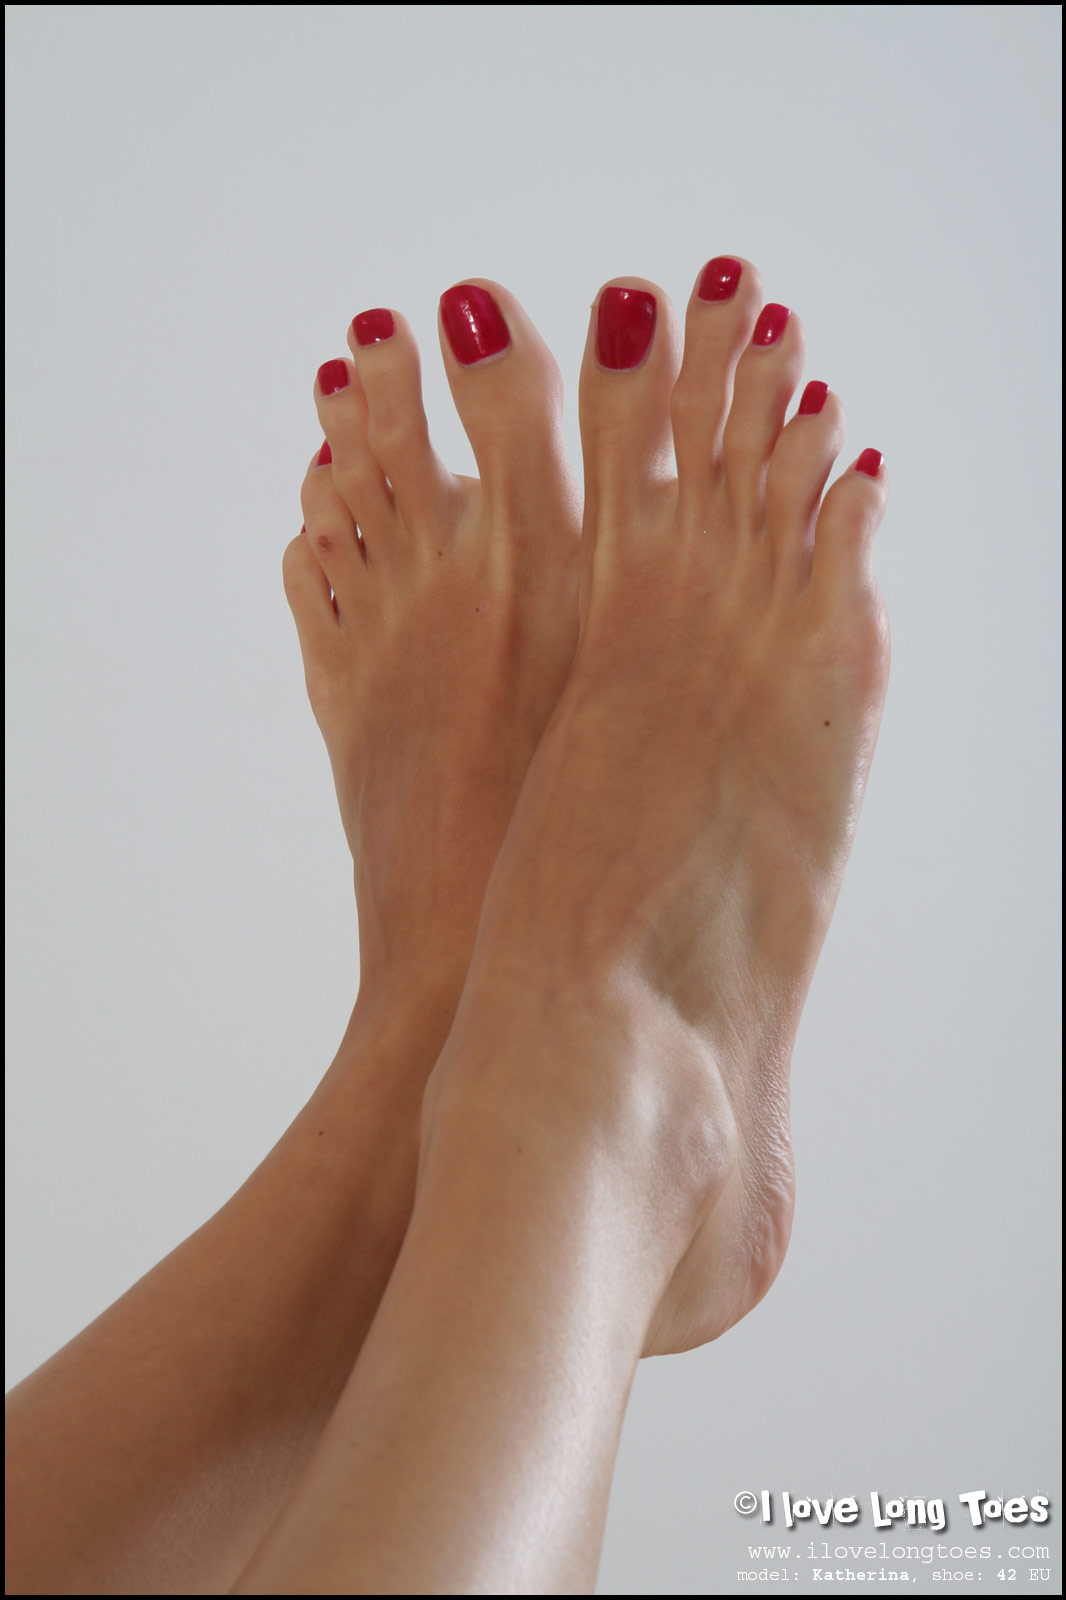 image Long toes for a short while